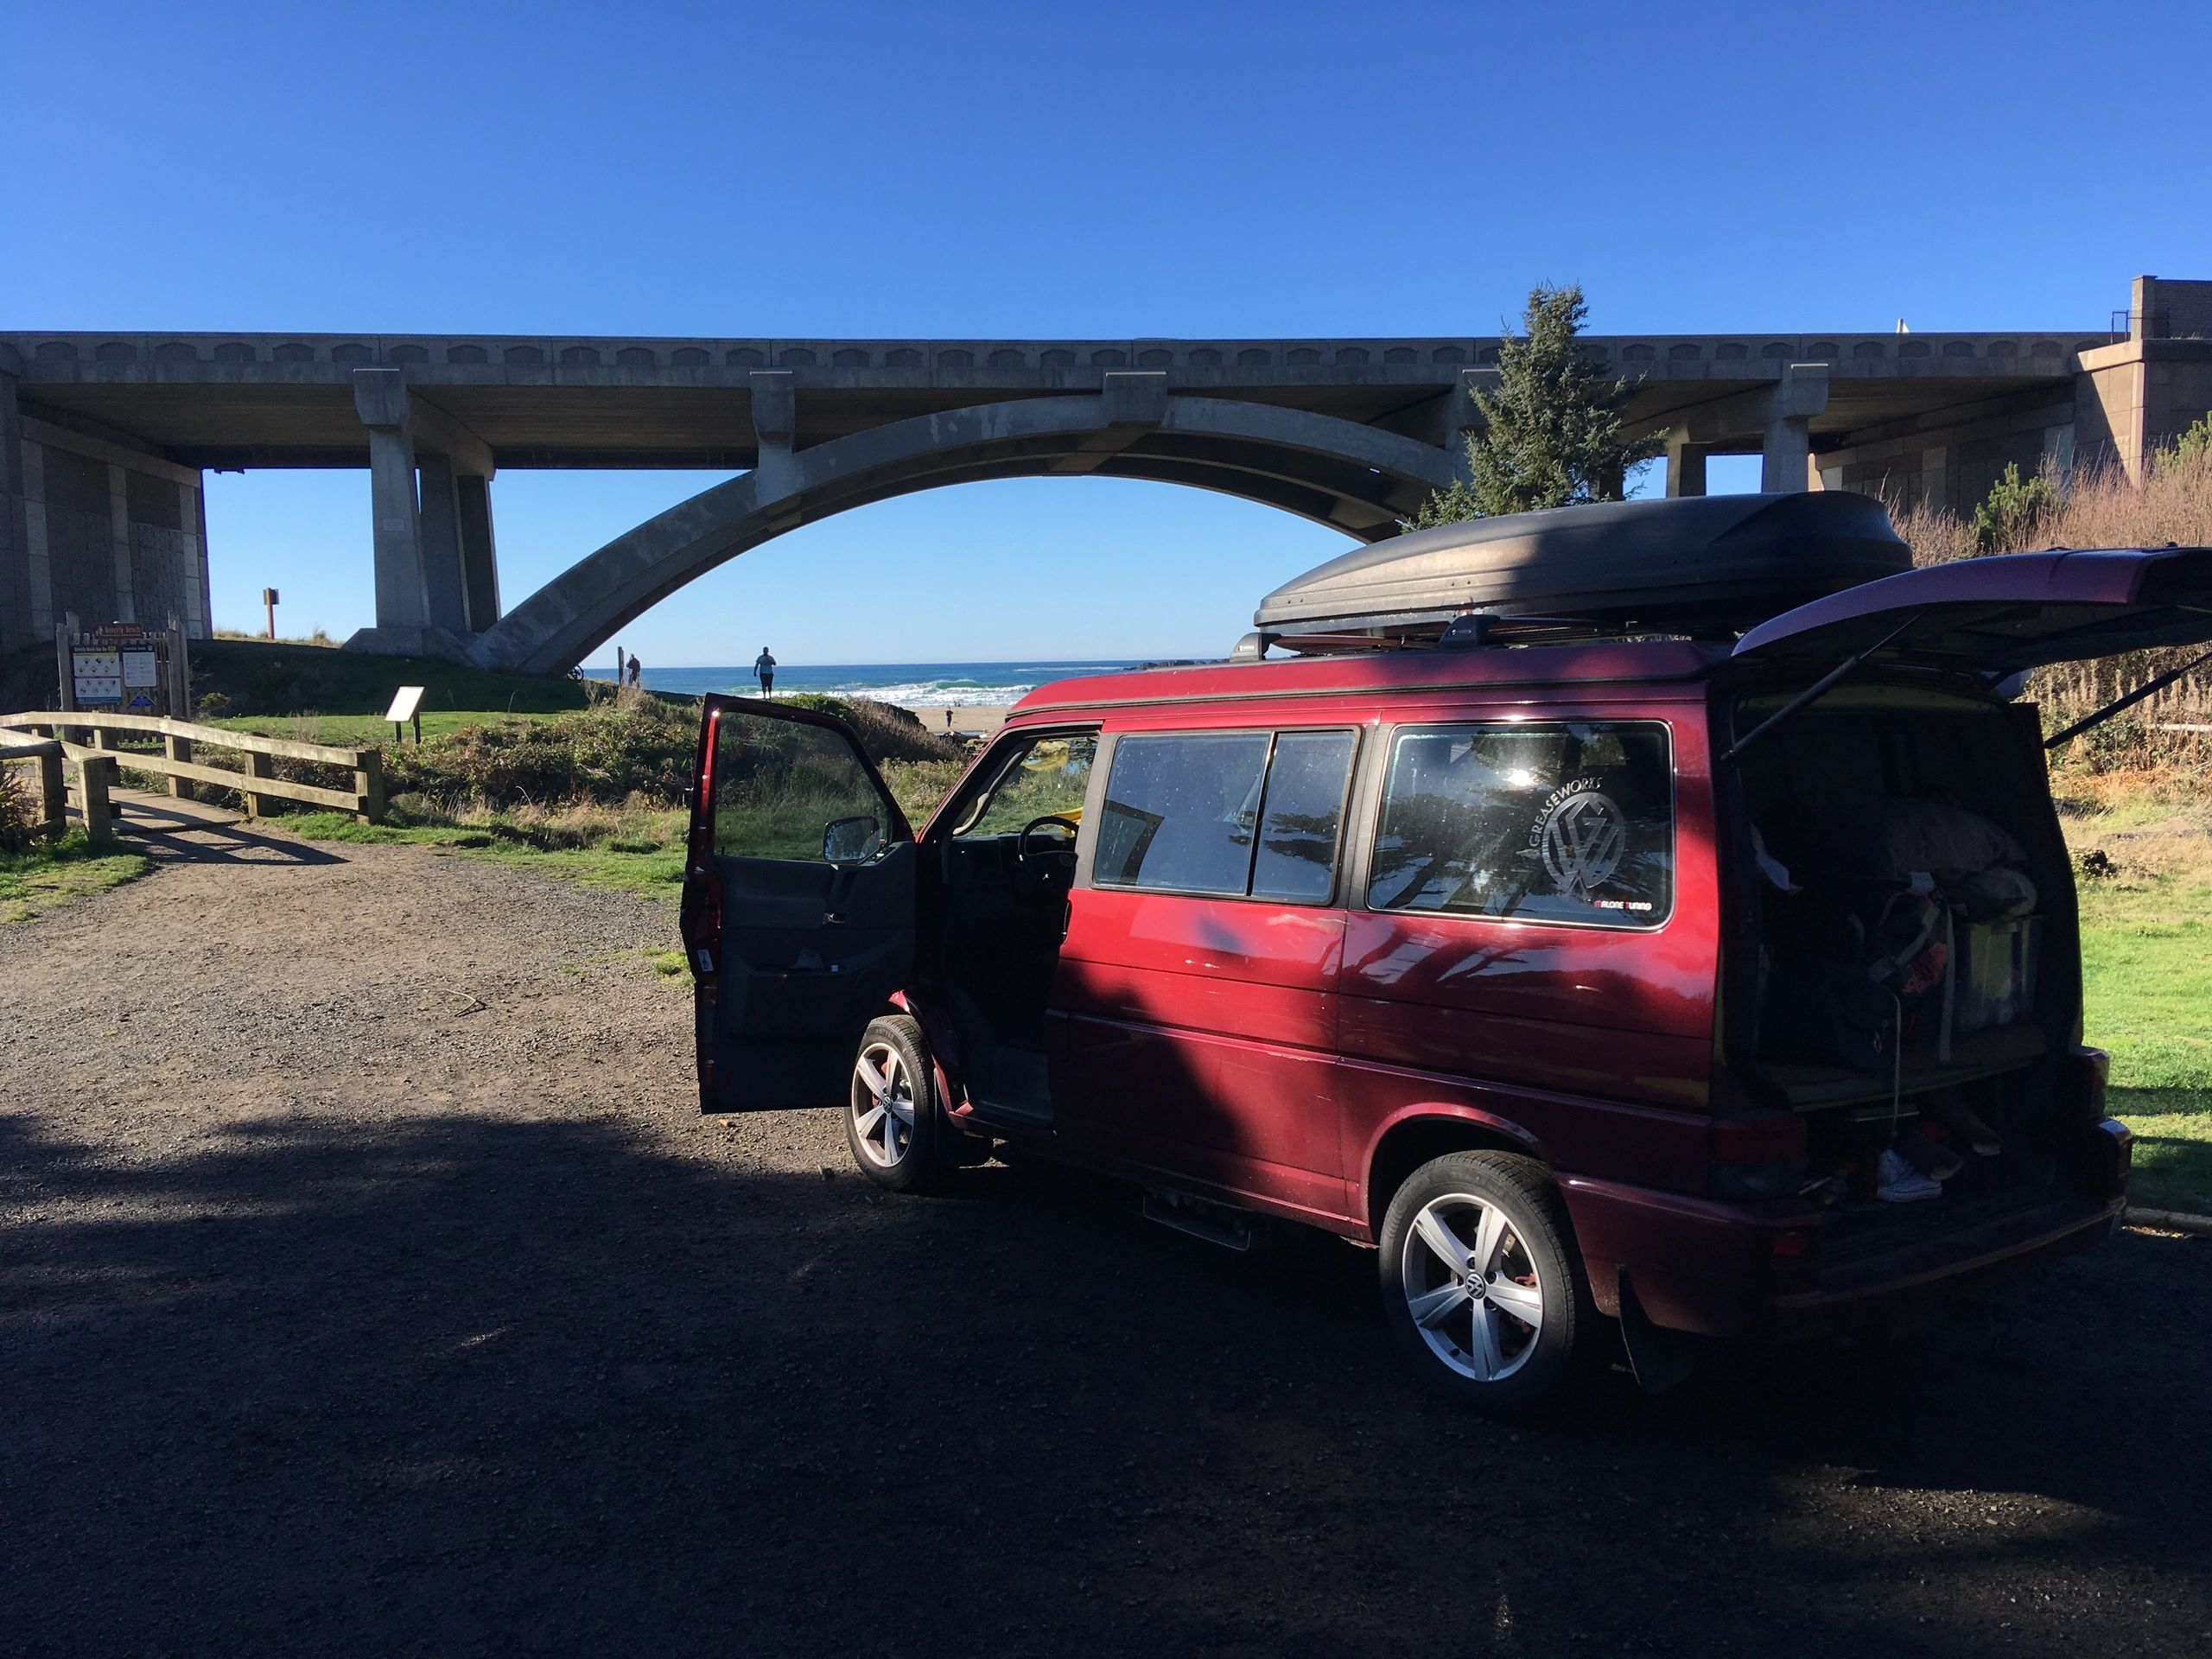 2000 Eurovan T4 weekender with 1.9l AHU TDI and 5-spd Syncro trans. Beverly Beach, Oregon